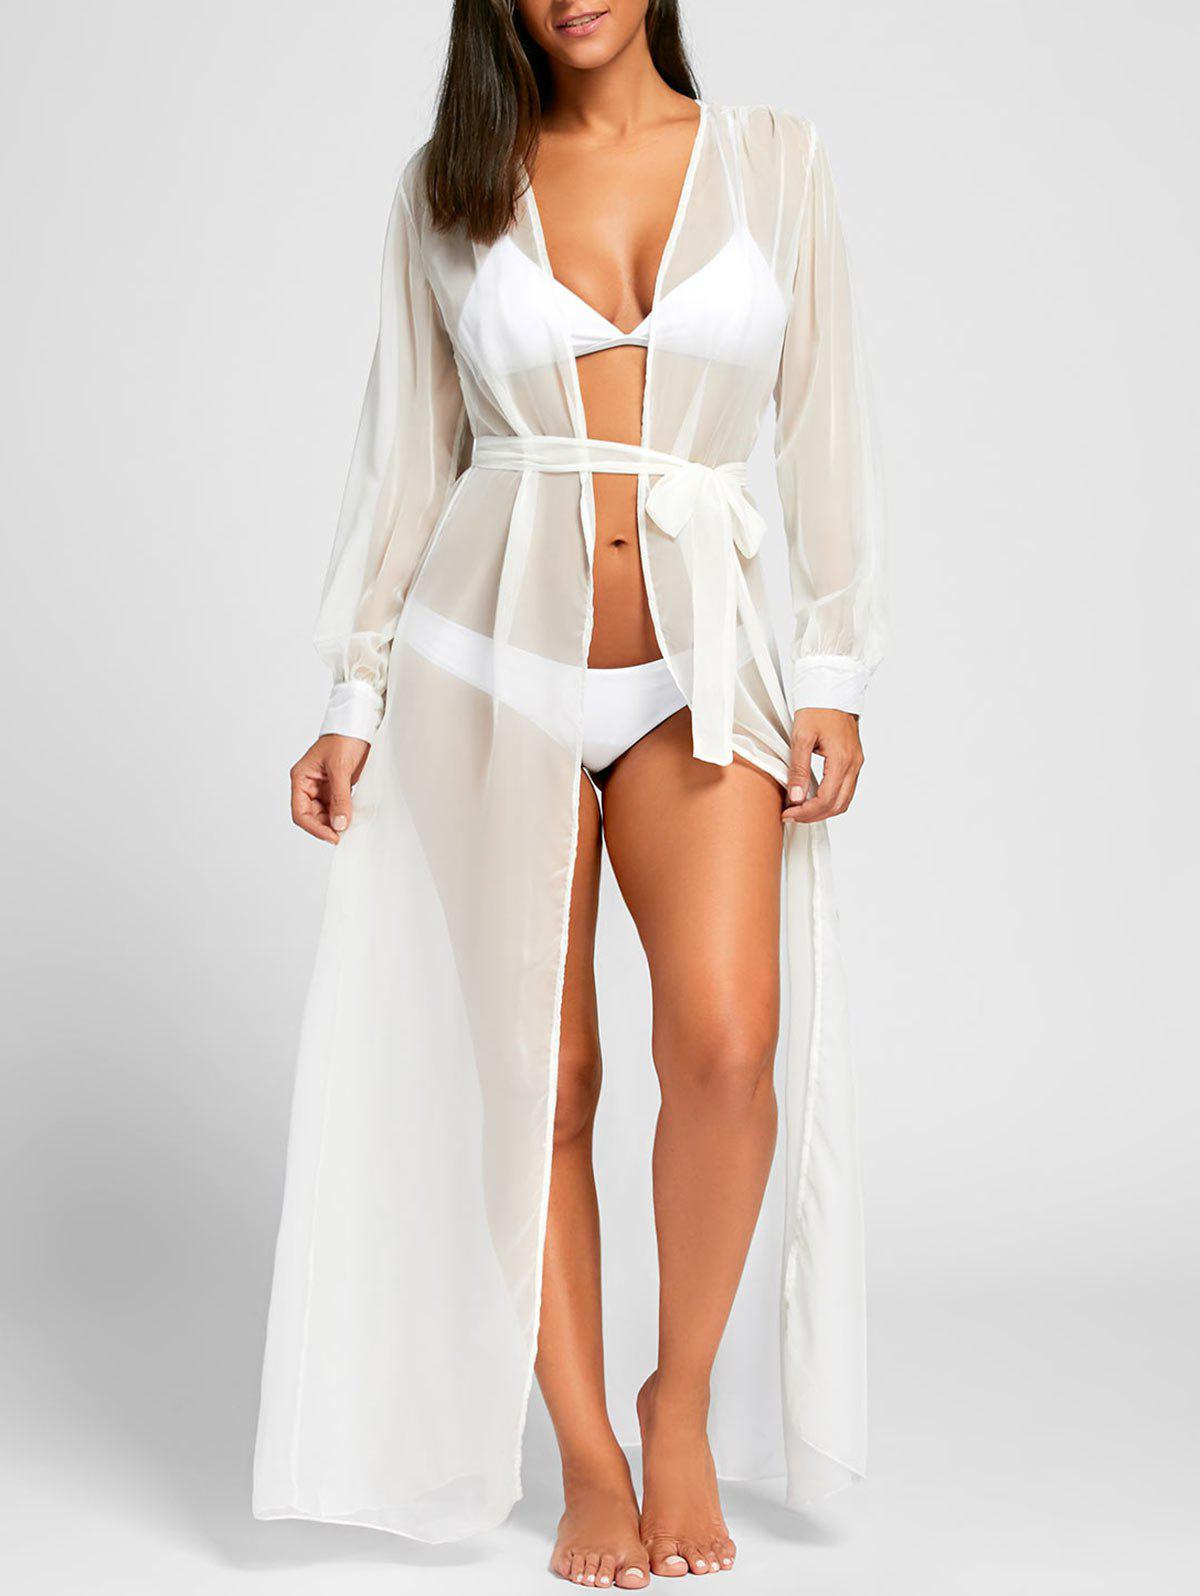 Flowy Maxi Wrap Cover Up DressWOMEN<br><br>Size: M; Color: WHITE; Cover-Up Type: Dress; Gender: For Women; Material: Polyester; Neckline: Plunging Neck; Shirt Length: X-Long; Sleeve Length: Long Sleeves; Pattern Type: Solid; Weight: 0.1800kg; Package Contents: 1 x Dress  1 x Belt;